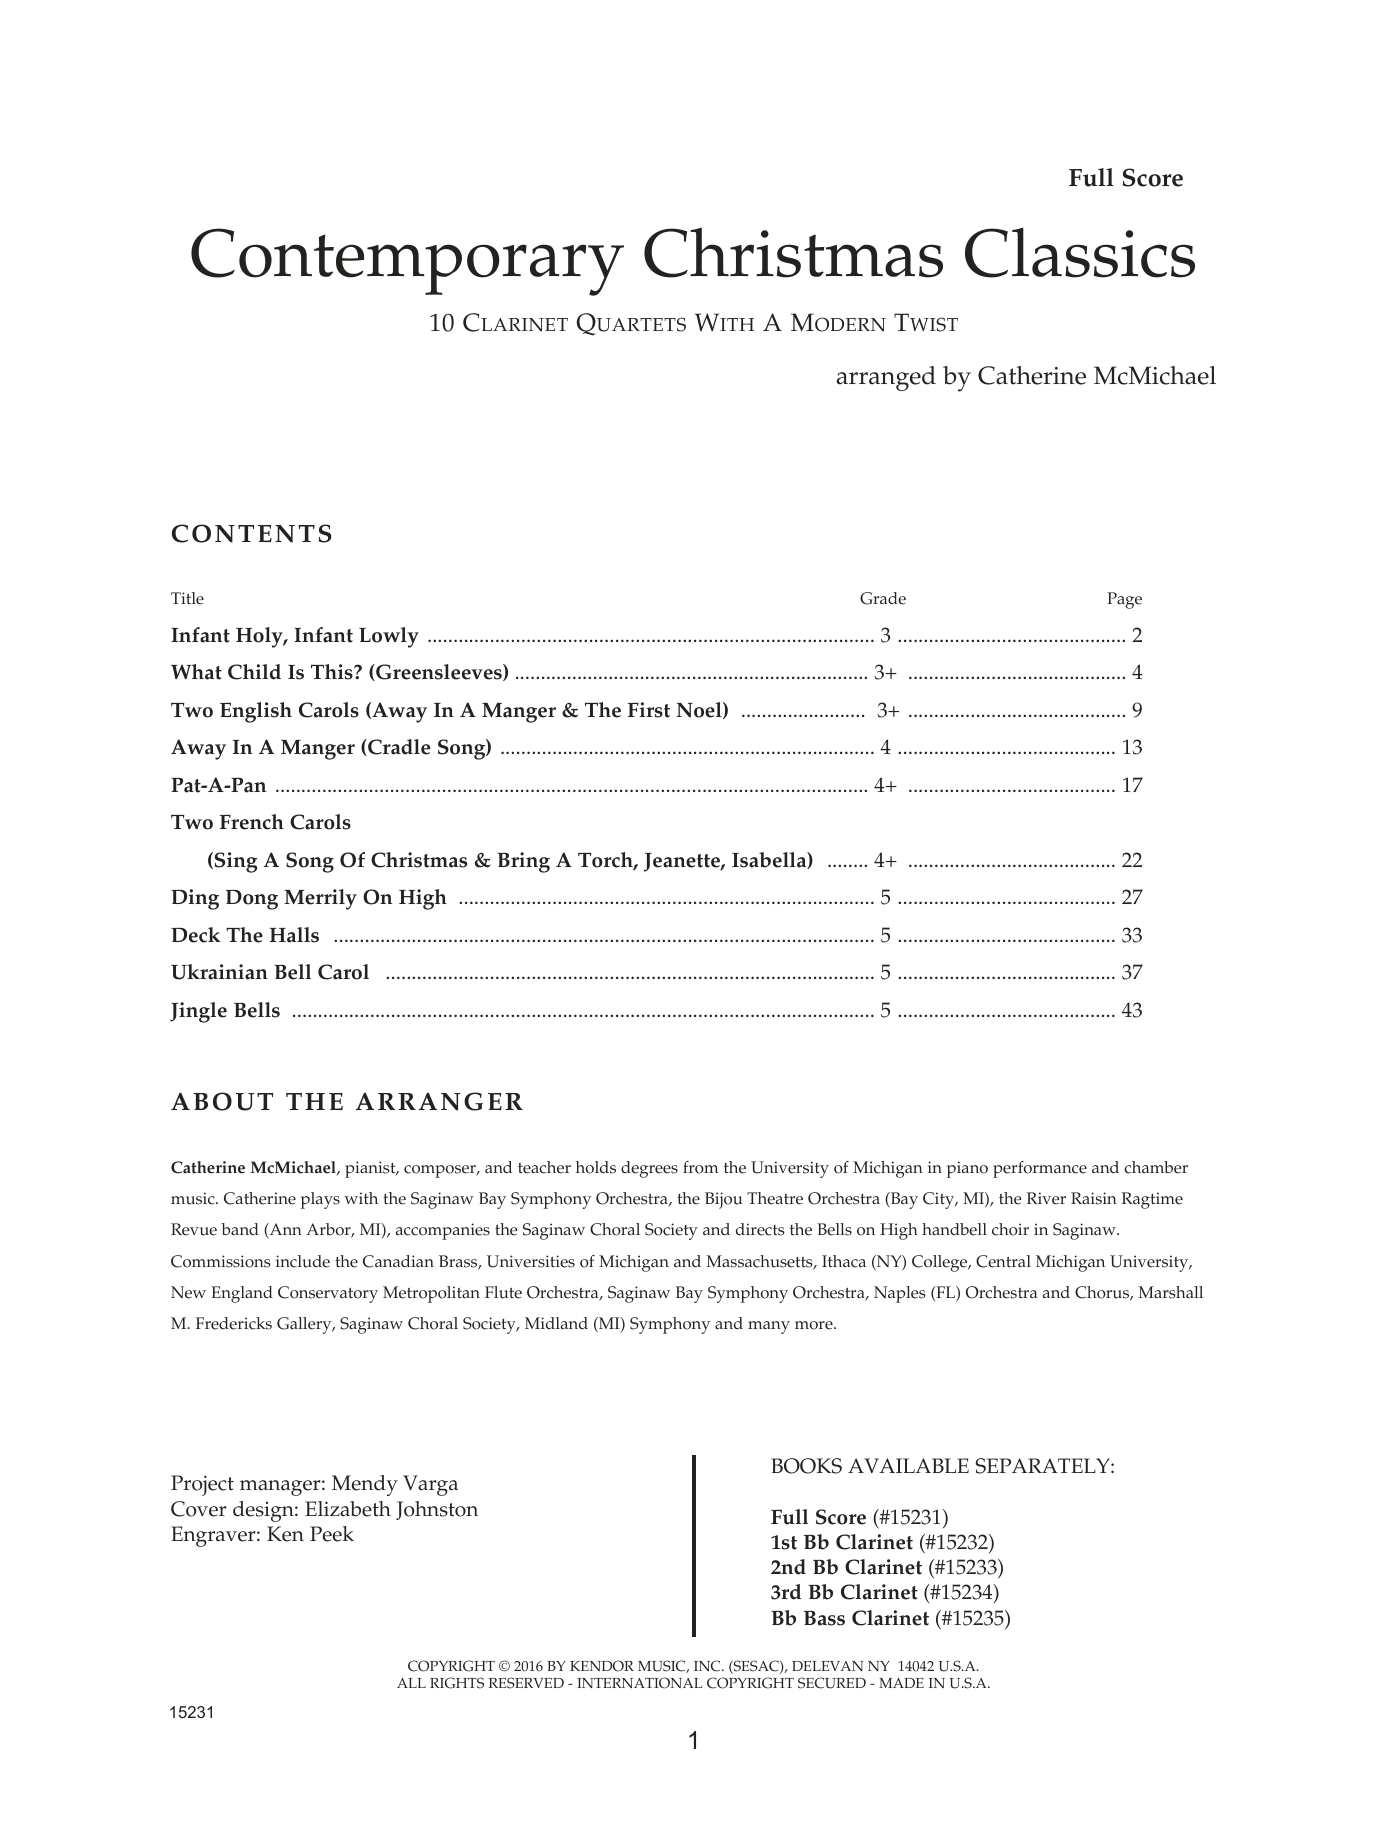 Catherine McMichael Contemporary Christmas Classics - Full Score sheet music notes and chords. Download Printable PDF.